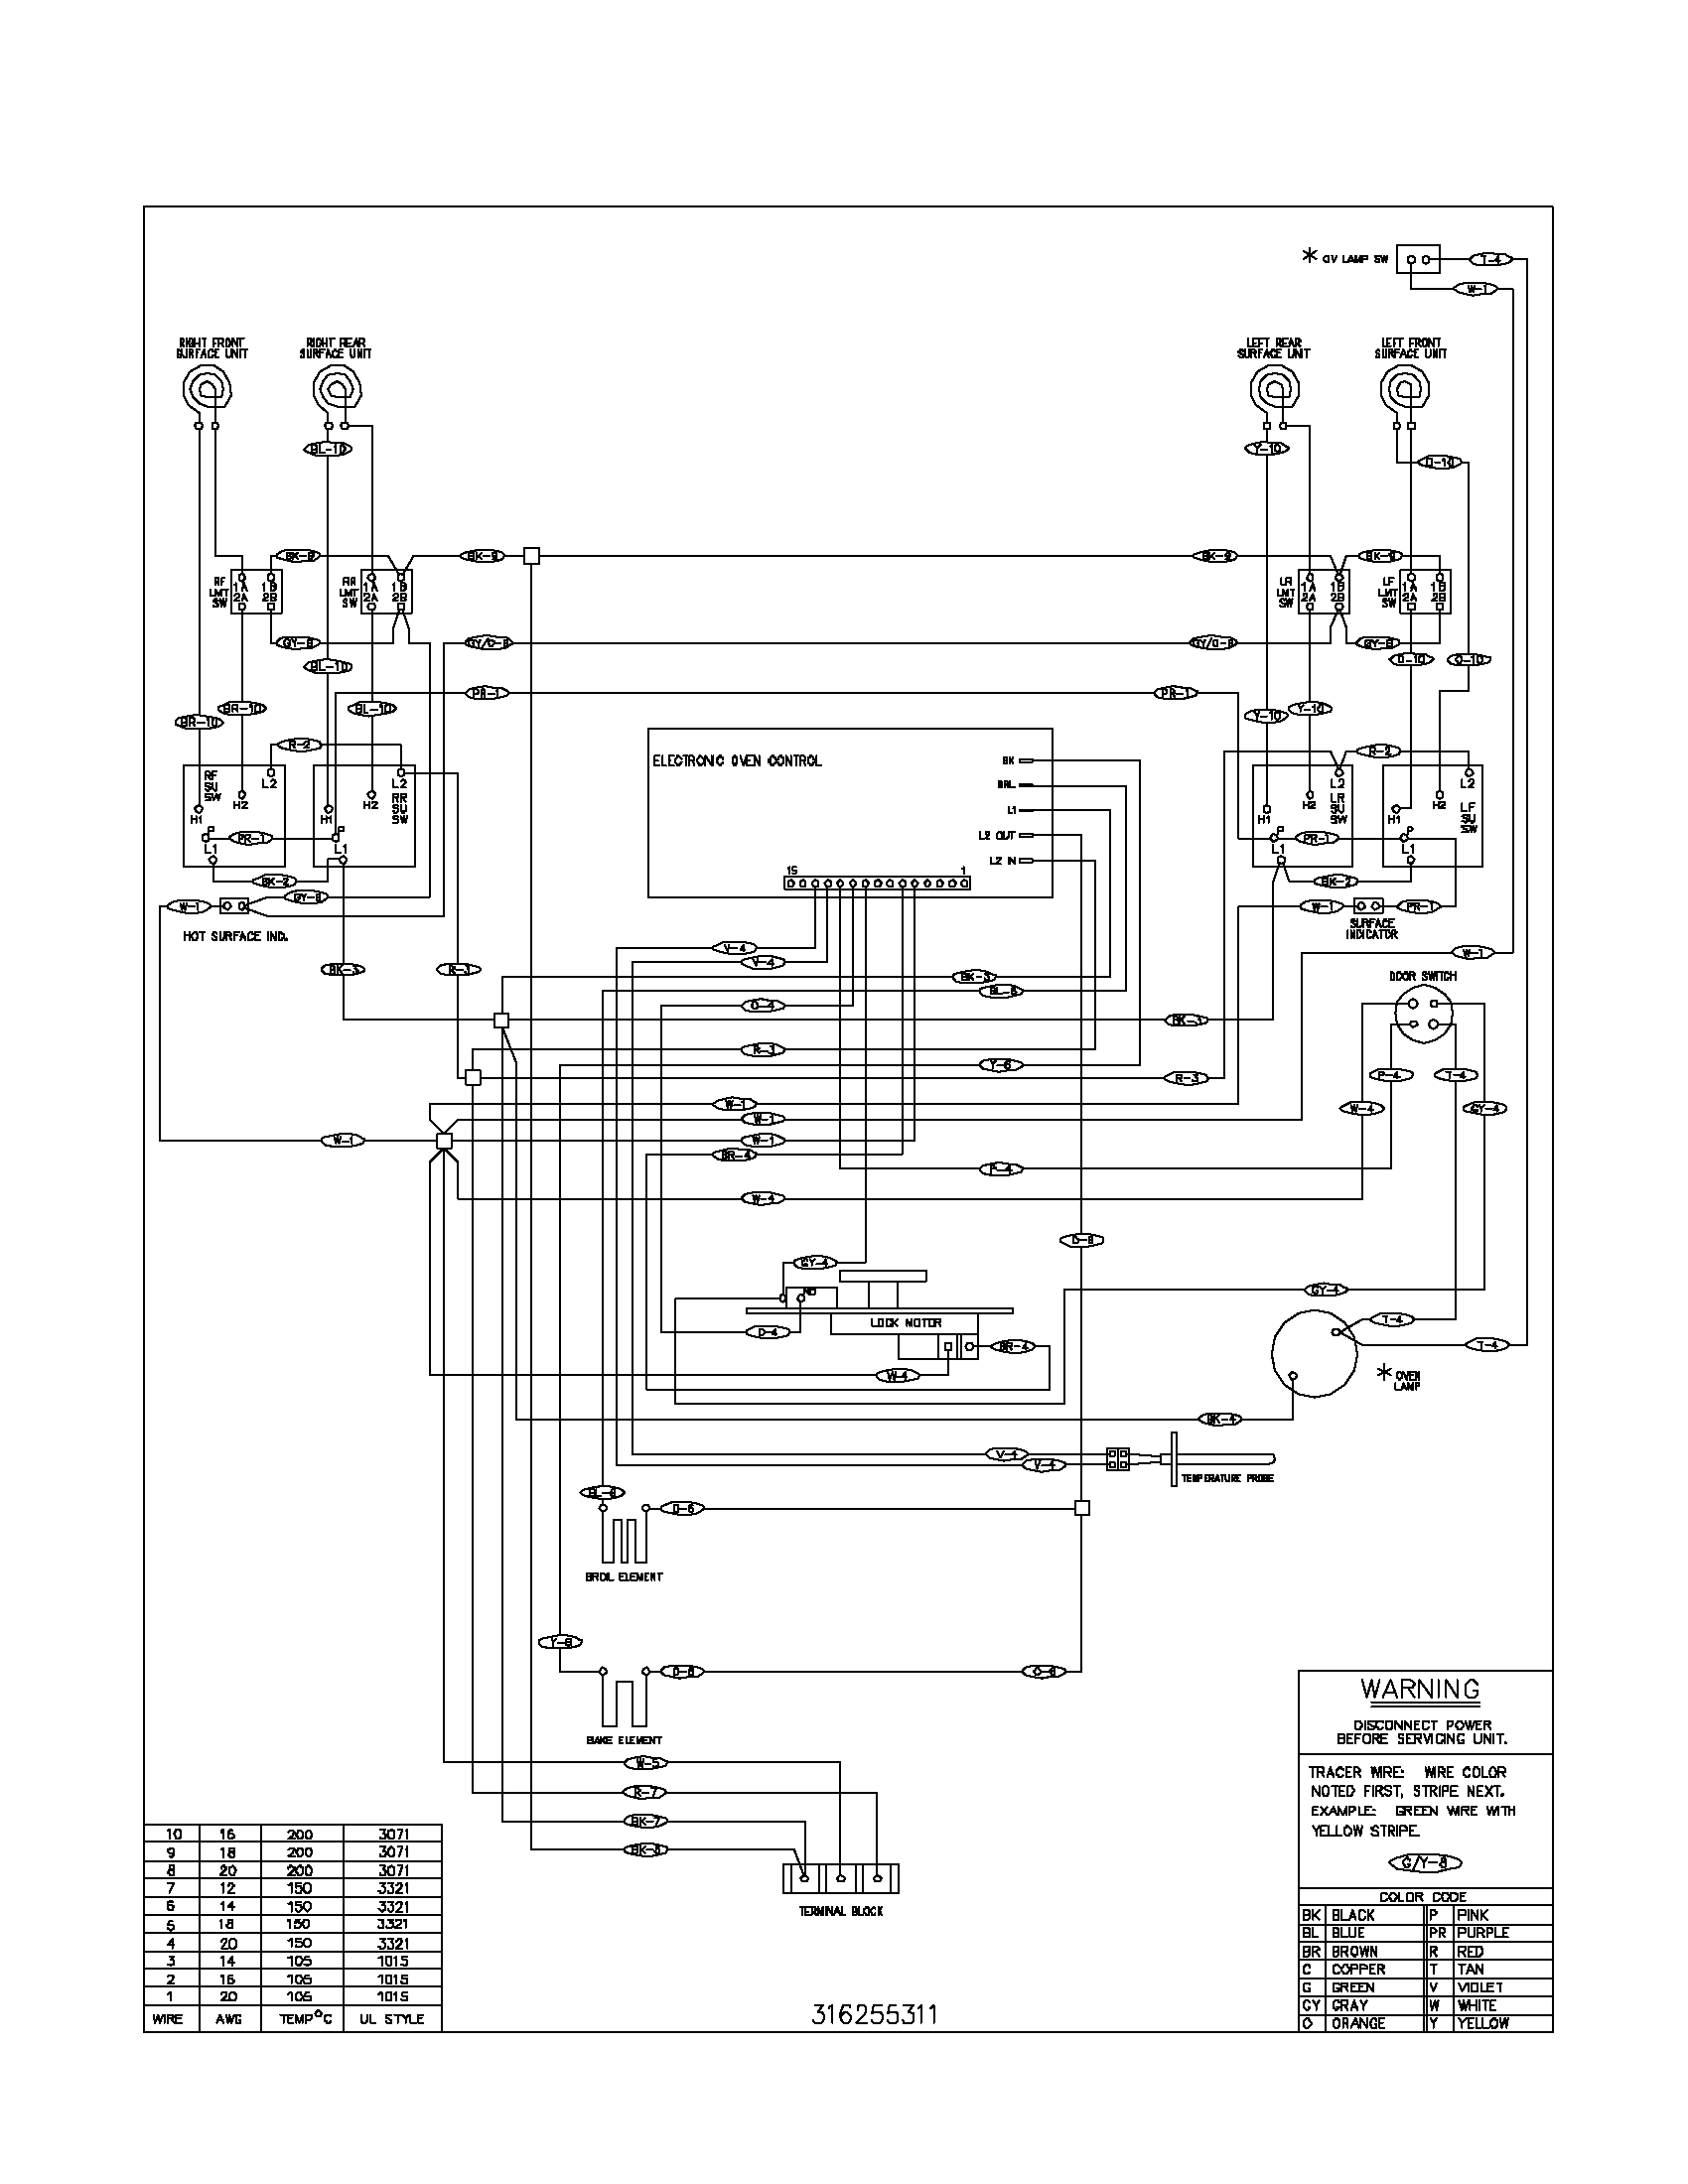 wiring diagram parts?resize\\\\\\\\\\\\\\\\\\\\\\\\\\\\\\\\\\\\\\\\\\\\\\\=665%2C861\\\\\\\\\\\\\\\\\\\\\\\\\\\\\\\\\\\\\\\\\\\\\\\&ssl\\\\\\\\\\\\\\\\\\\\\\\\\\\\\\\\\\\\\\\\\\\\\\\=1 rdx 755dz wiring diagram,dz \u2022 edmiracle co  at webbmarketing.co